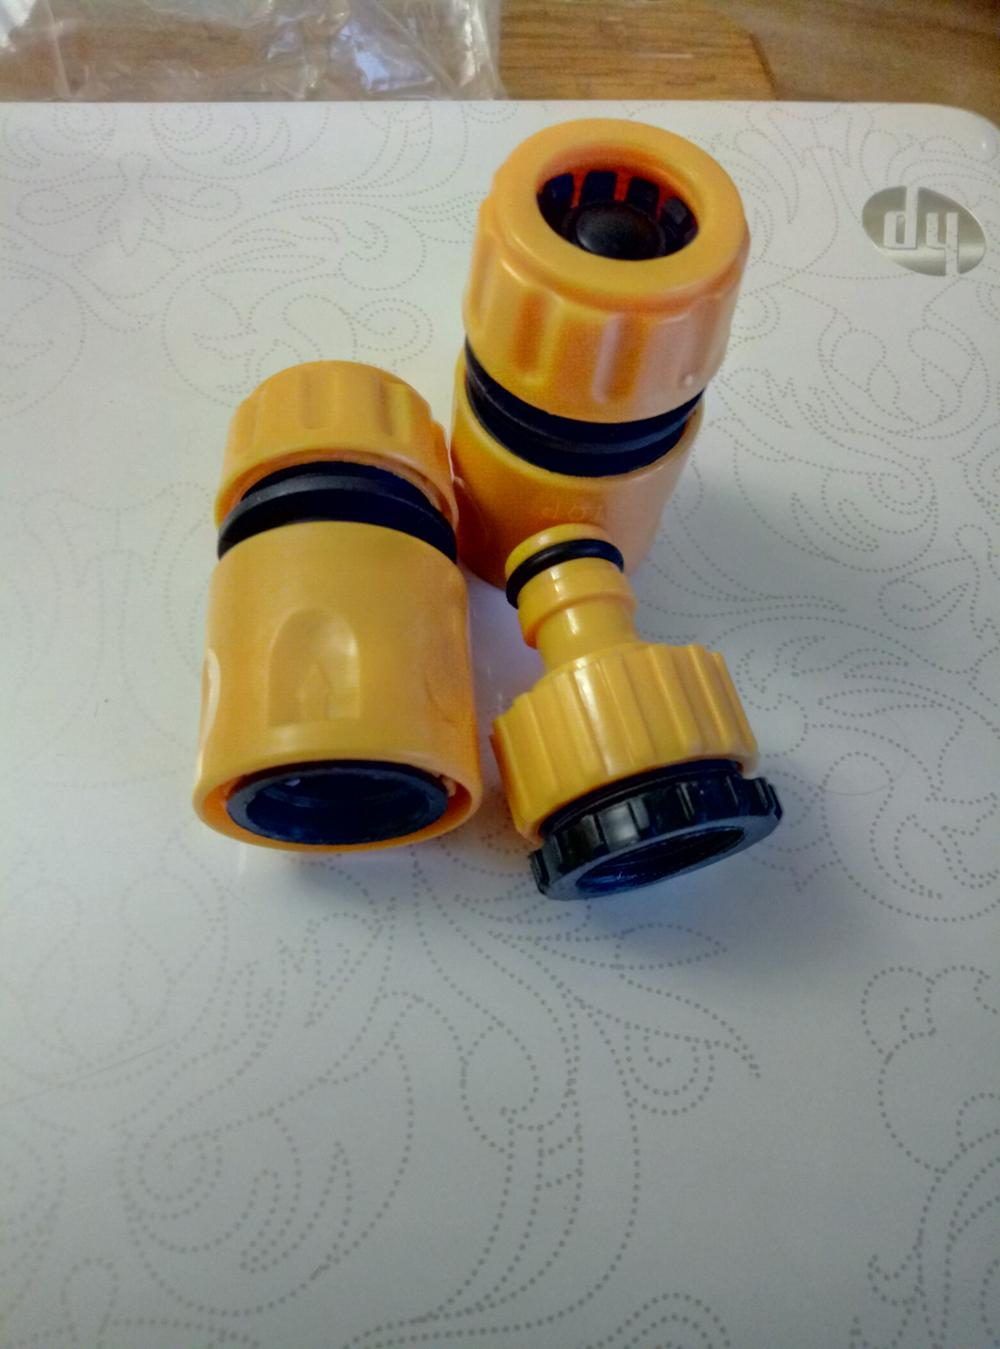 """Fast Coupling Adapter Drip Tape Irrigation Hose Connector With 1/2"""" 3/4""""barbed Garden Water Connector Irrigation Tool Kit"""